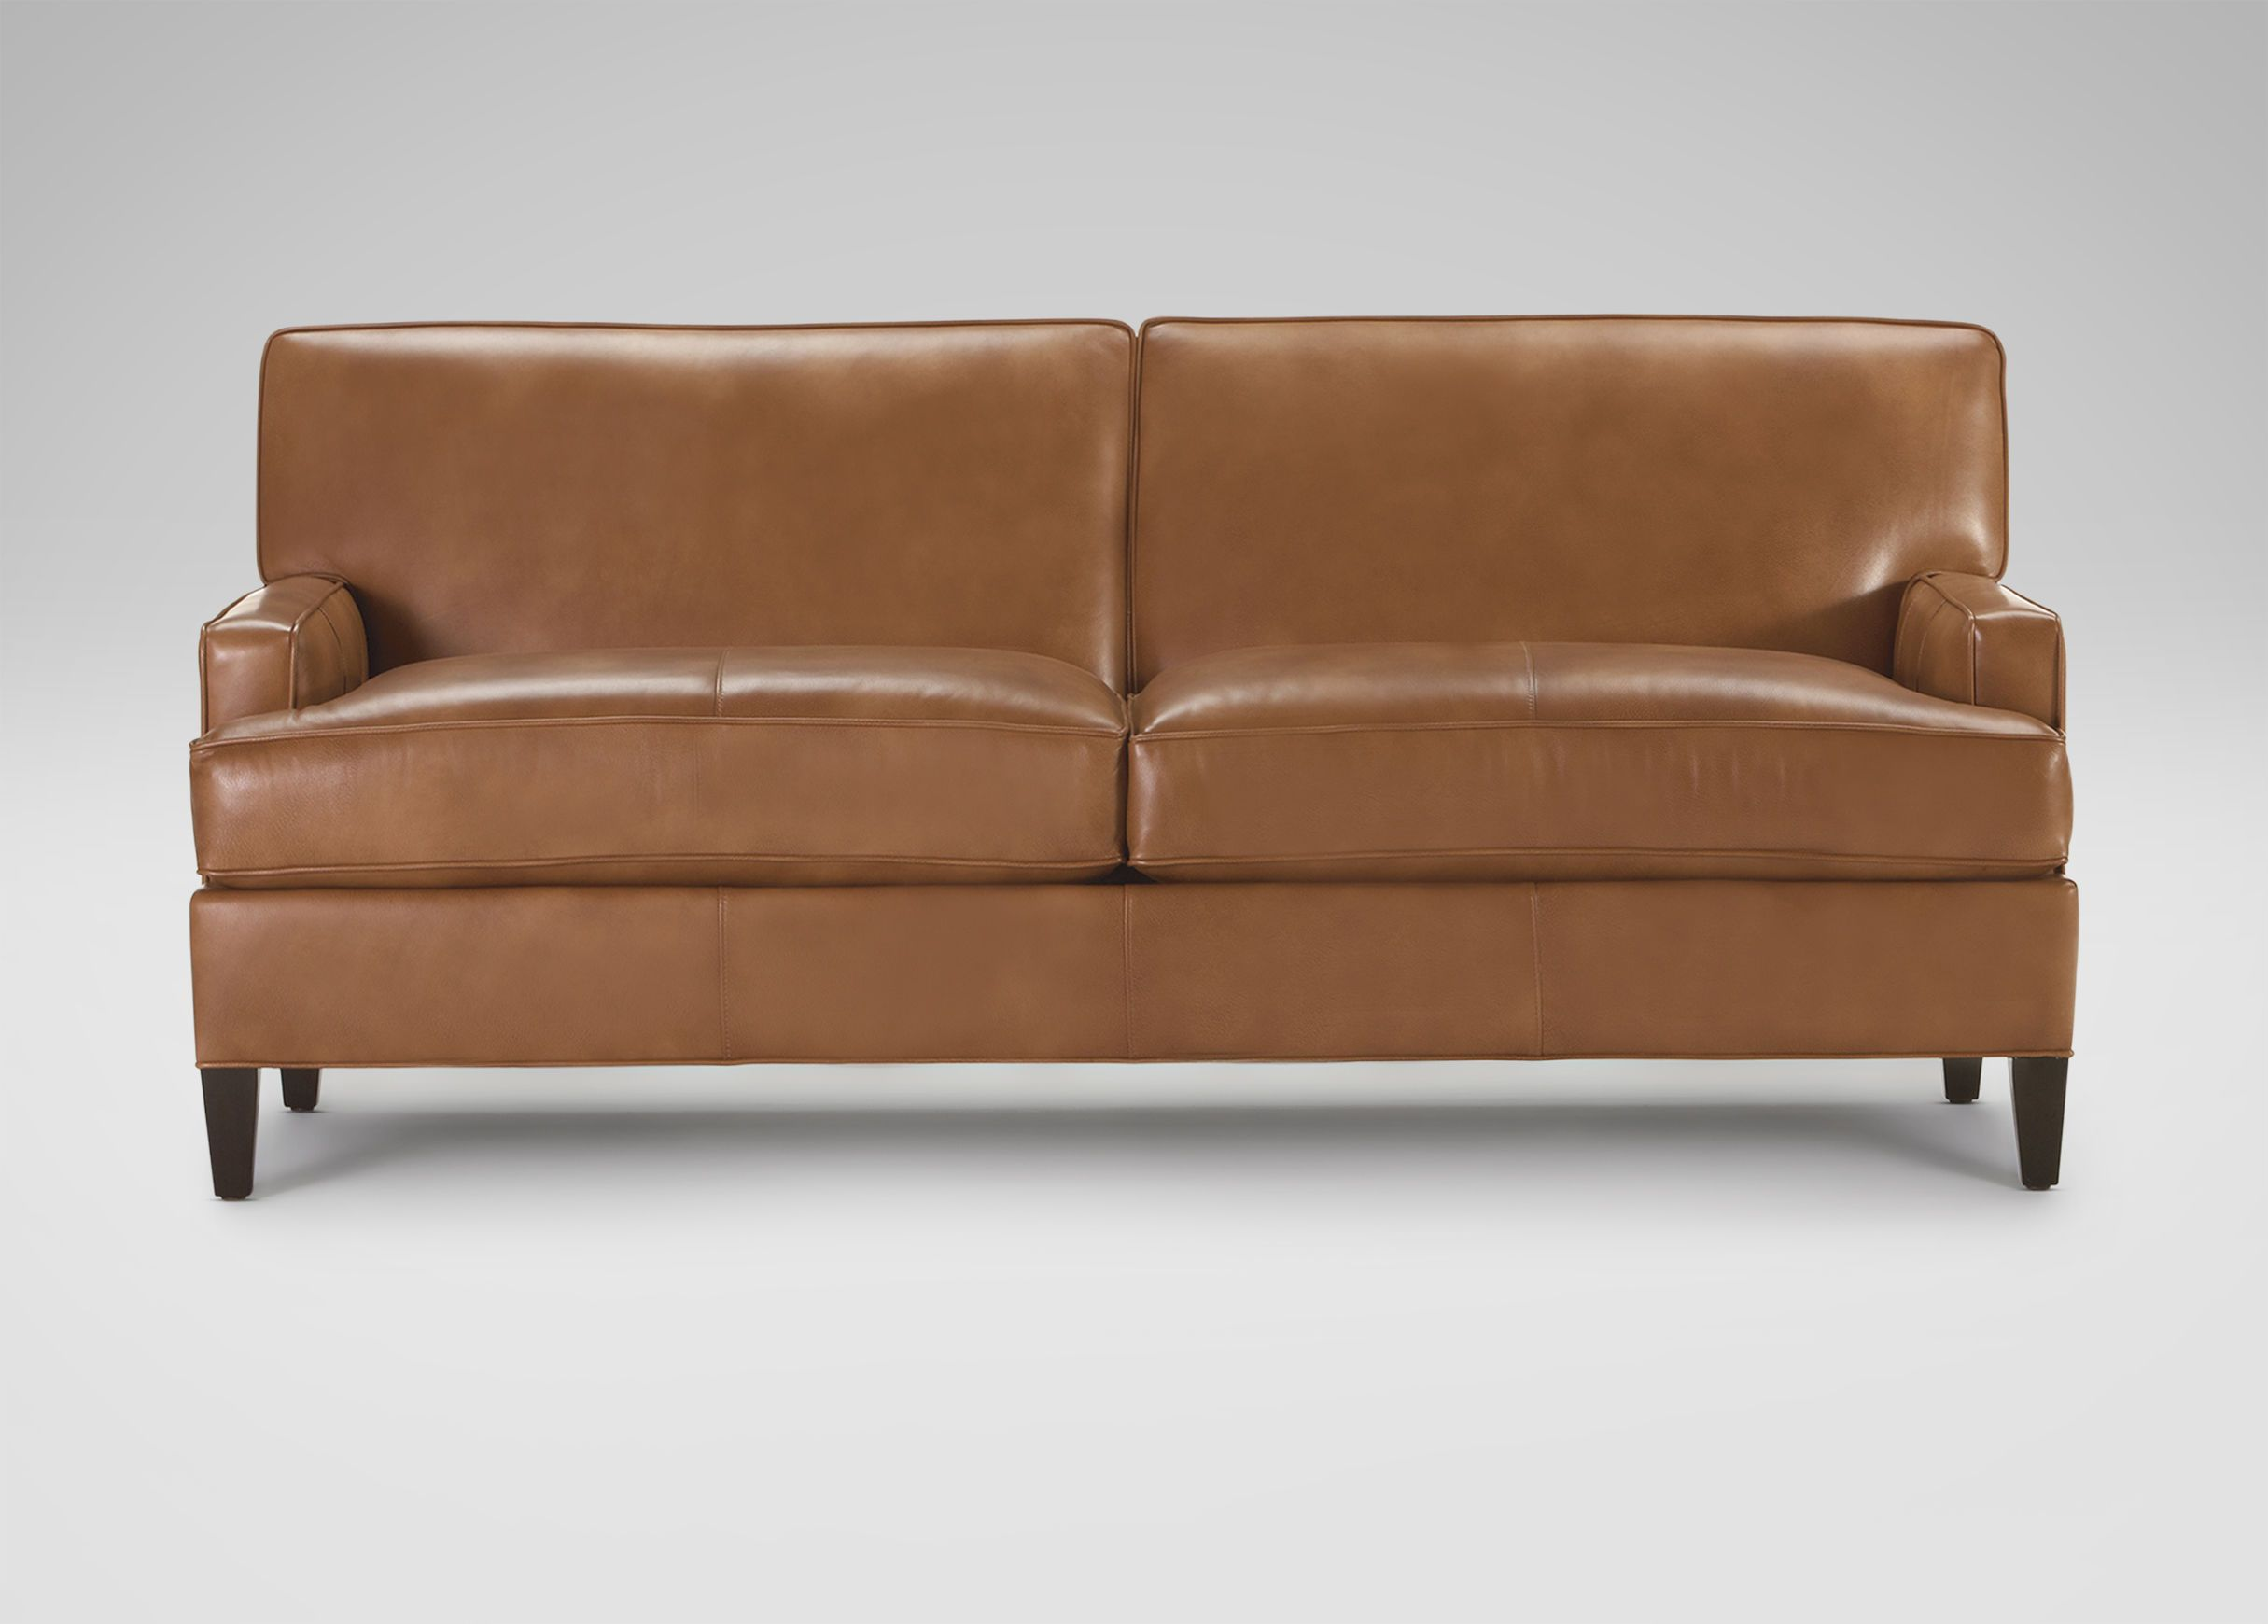 Bryant Leather Sofas Ethan Allen Starting At 2 319 20 Leather Sofa Leather Couch Red Accents Living Room